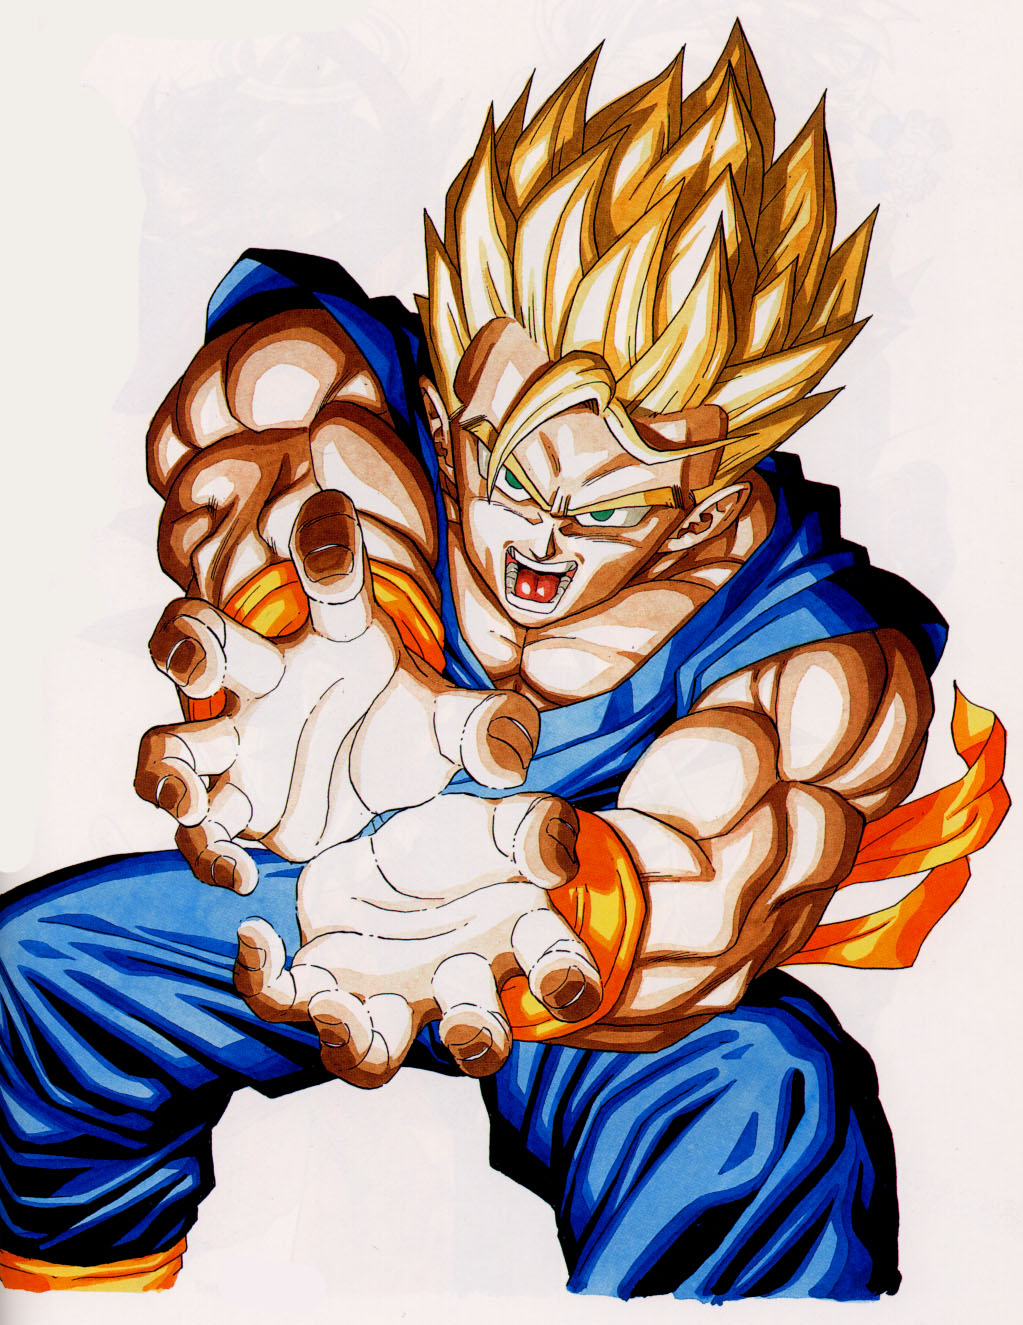 Dragon Ball Z Images F8ters HD Wallpaper And Background Photos